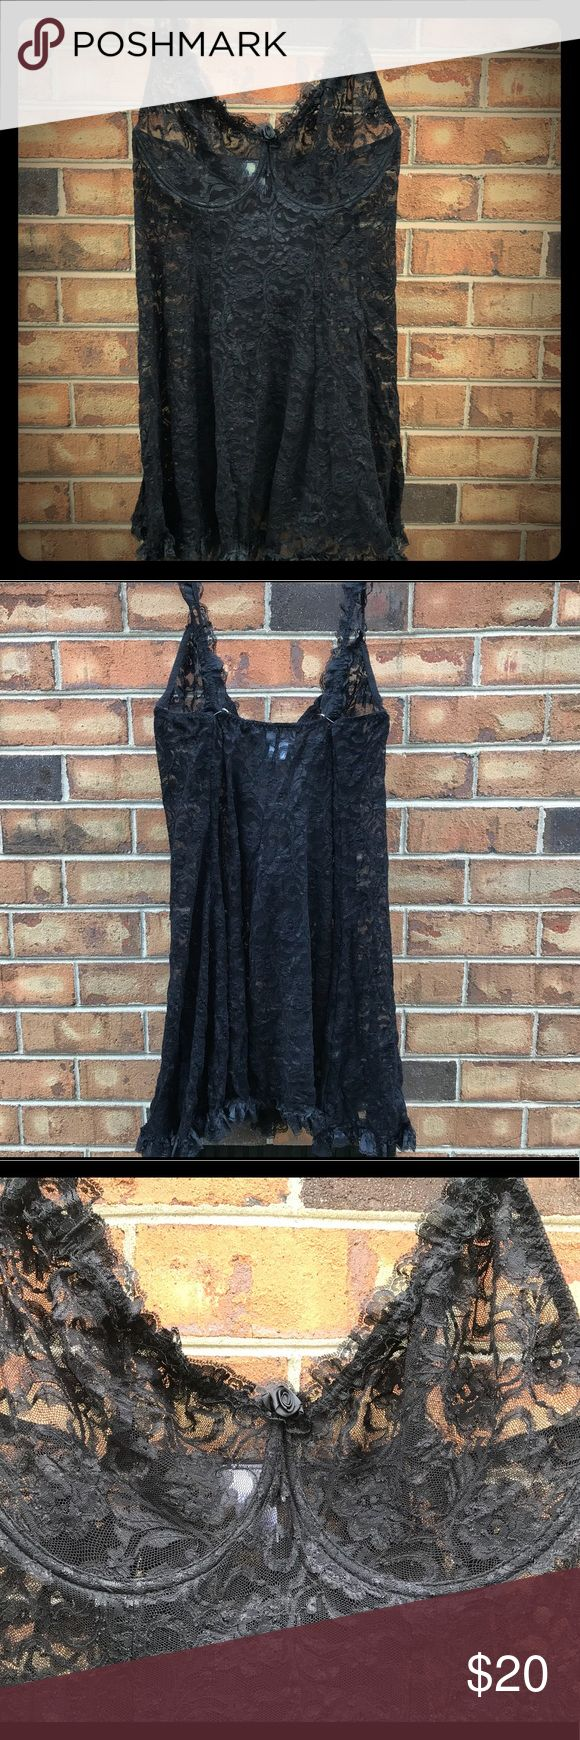 NWOT Enchanted black lace lingerie NWOT Enchanted Black lace lingerie with attached panties. Has never been worn panties are still attached. This is incredible sexy lingerie piece that would make your night in a lot more fun.  It does have stretch. Please view all photos and ask any questions prior to purchasing. I do consider offers. Happy shopping. enchanted Intimates & Sleepwear Chemises & Slips